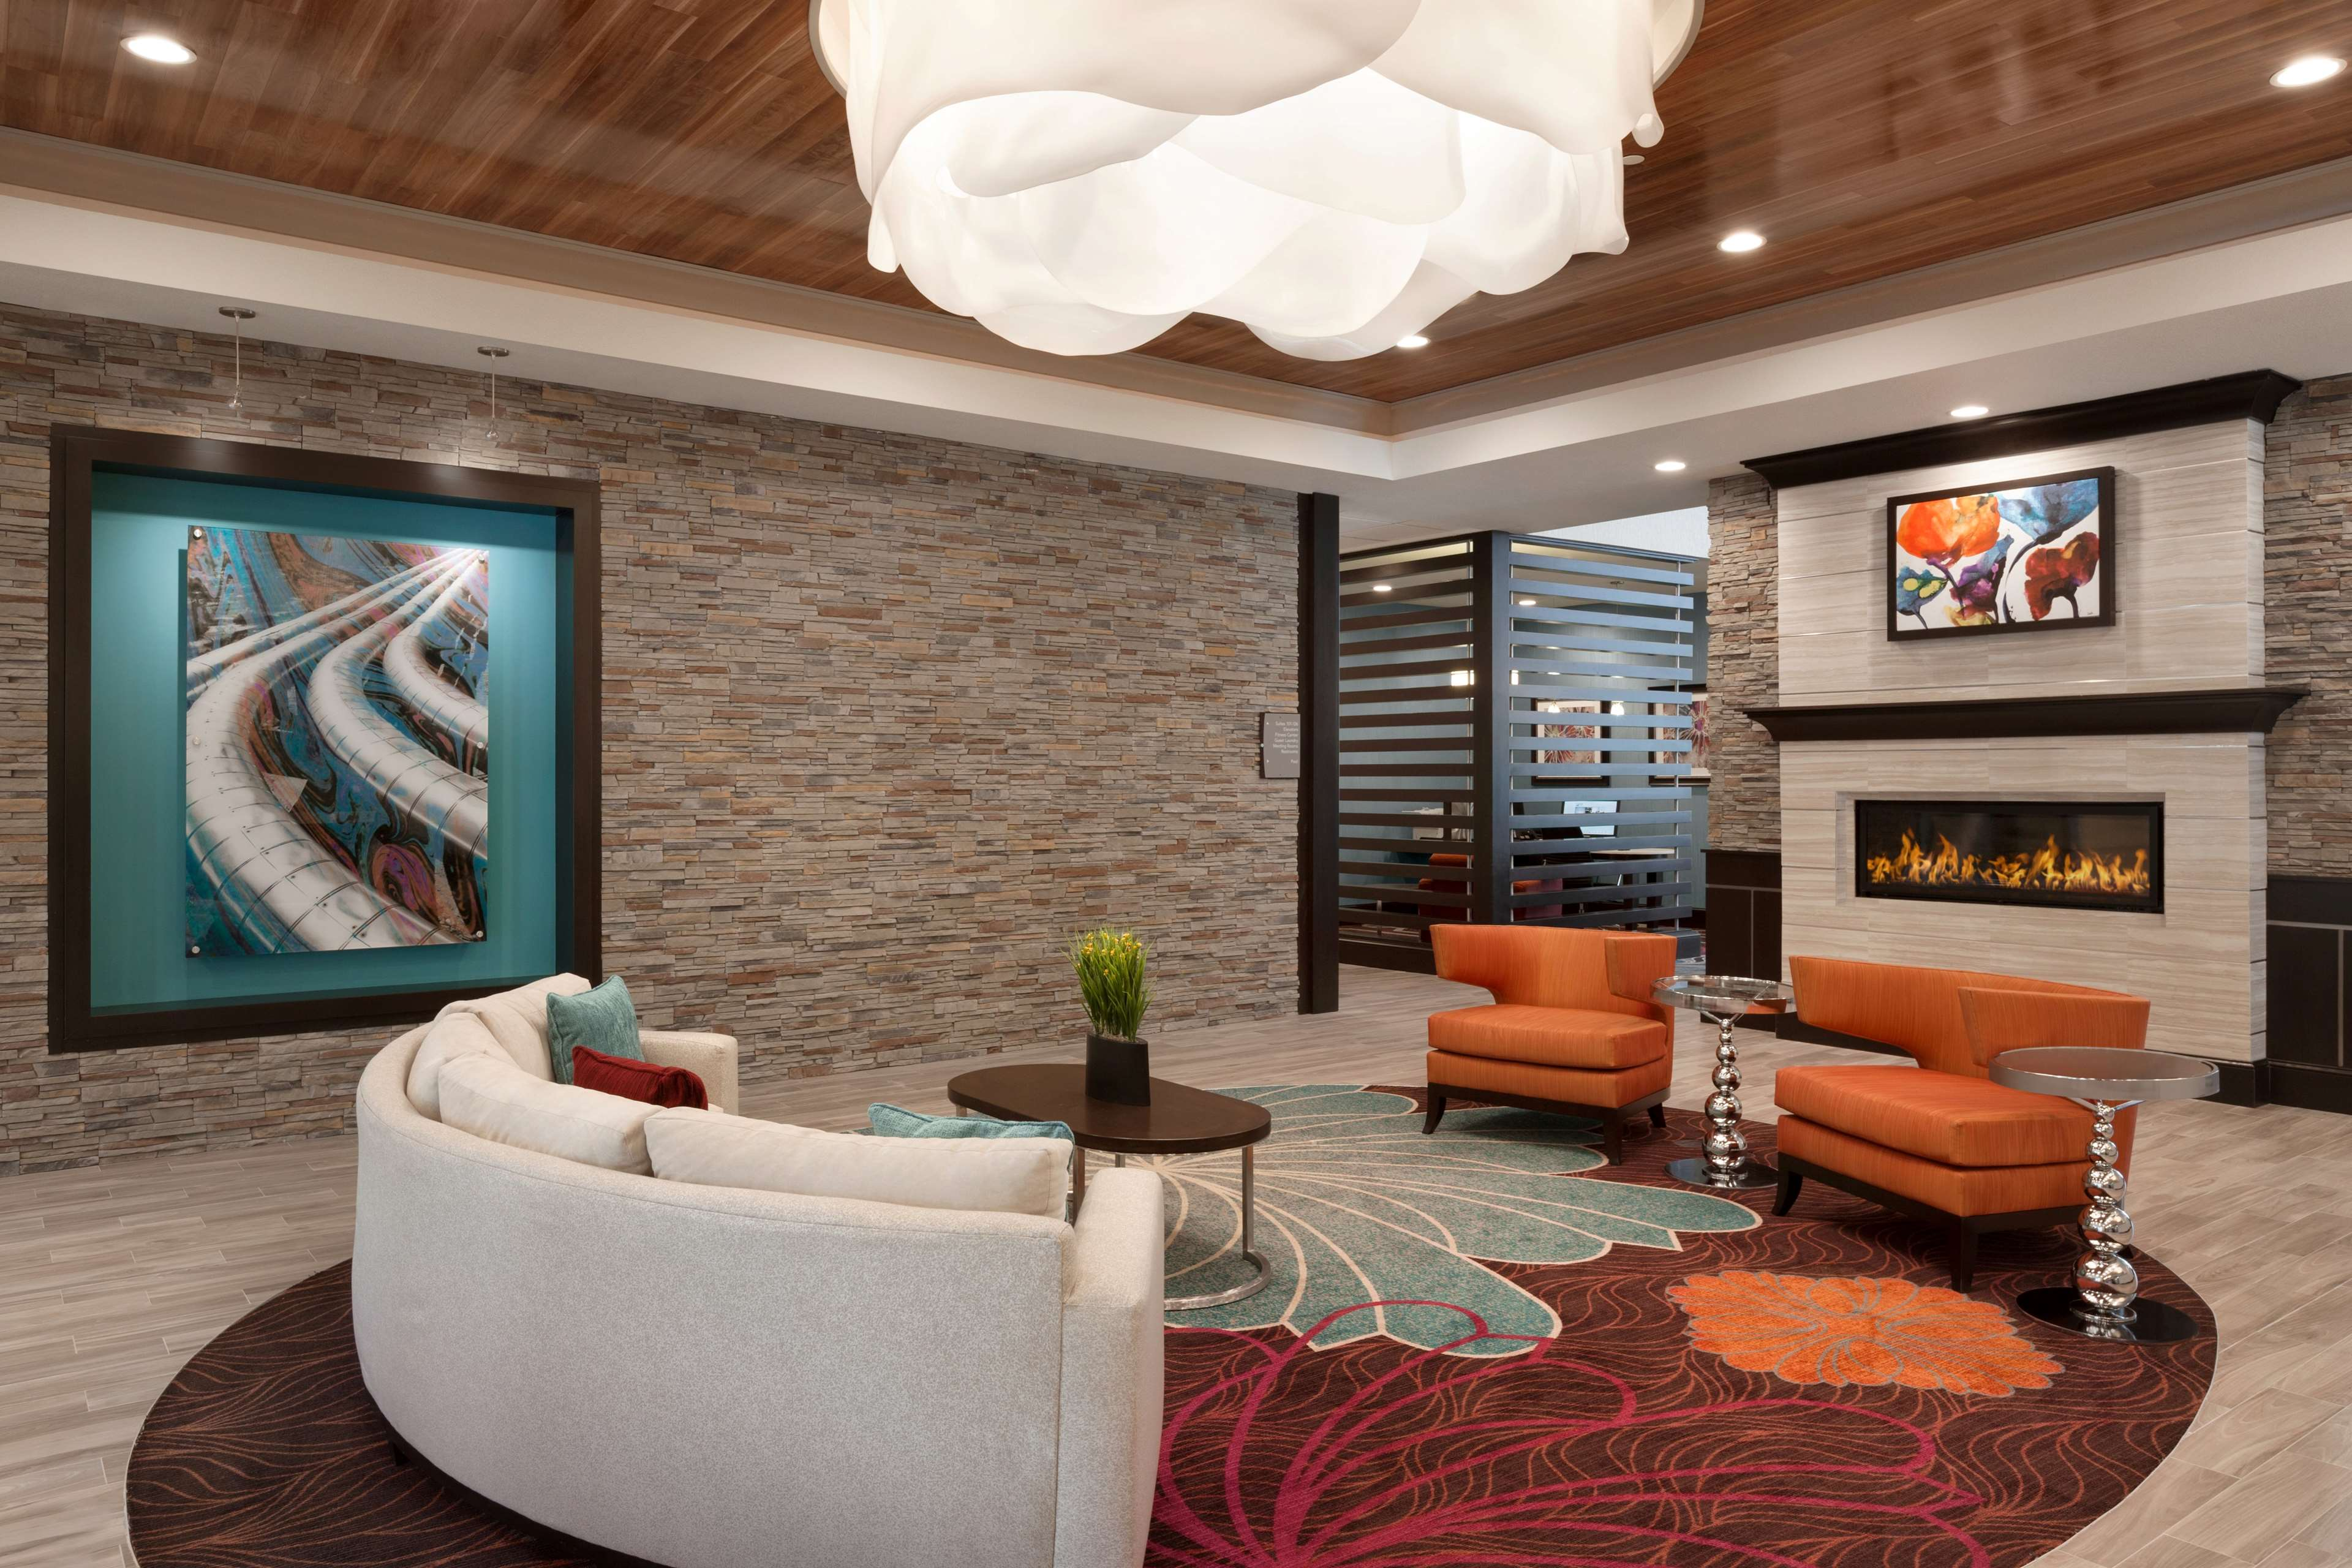 Homewood Suites by Hilton North Houston/Spring image 4